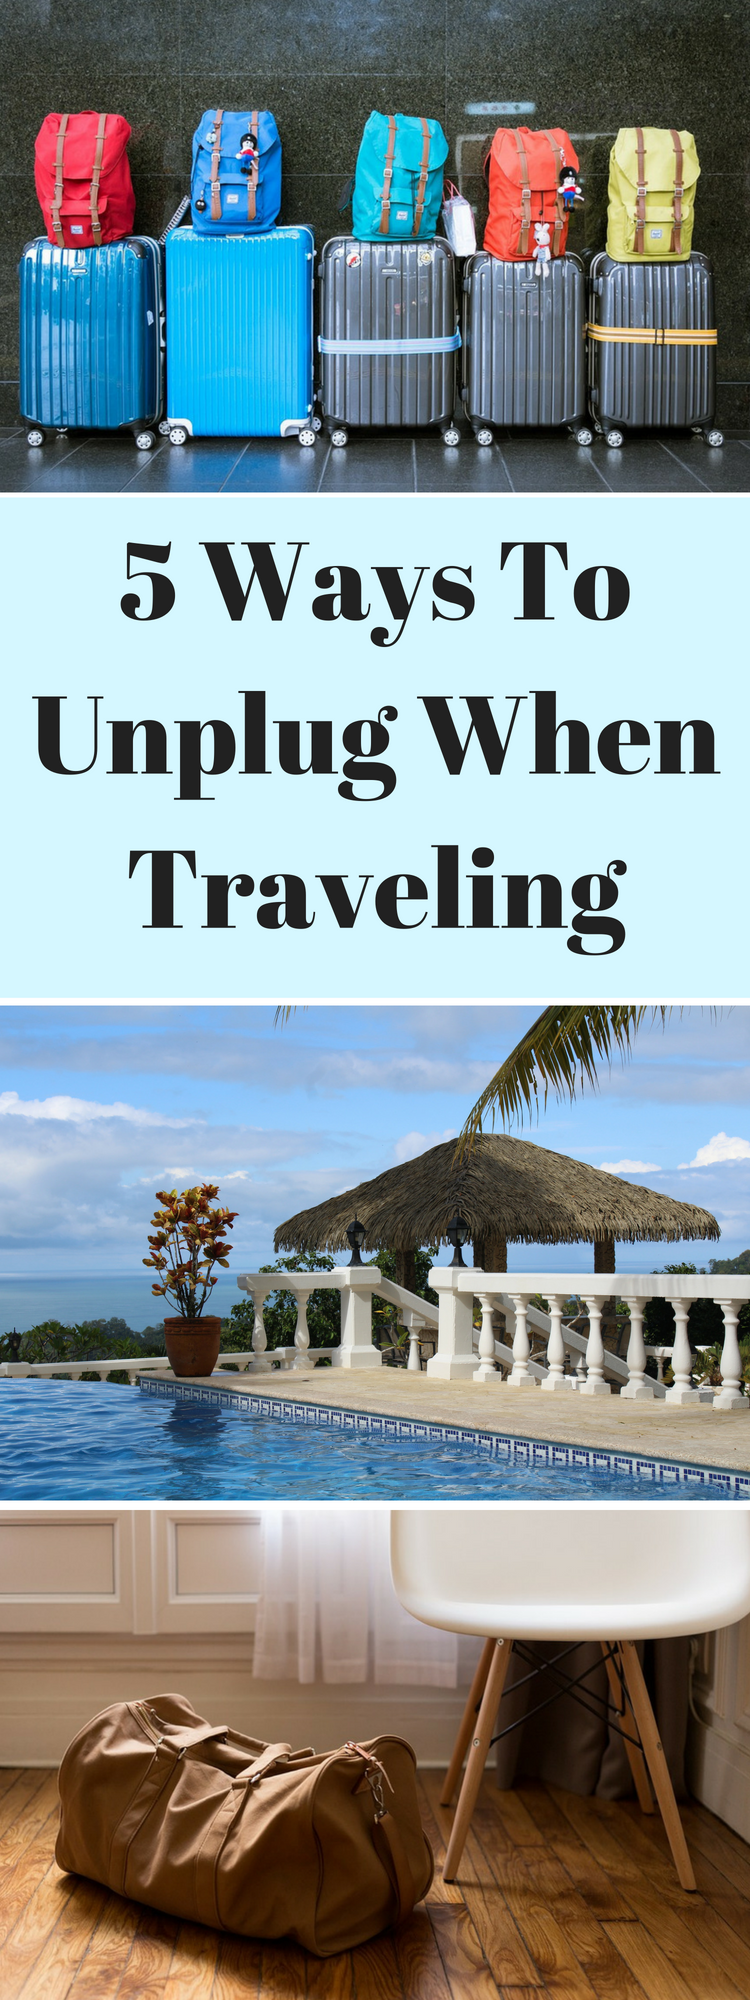 Unplug When Traveling